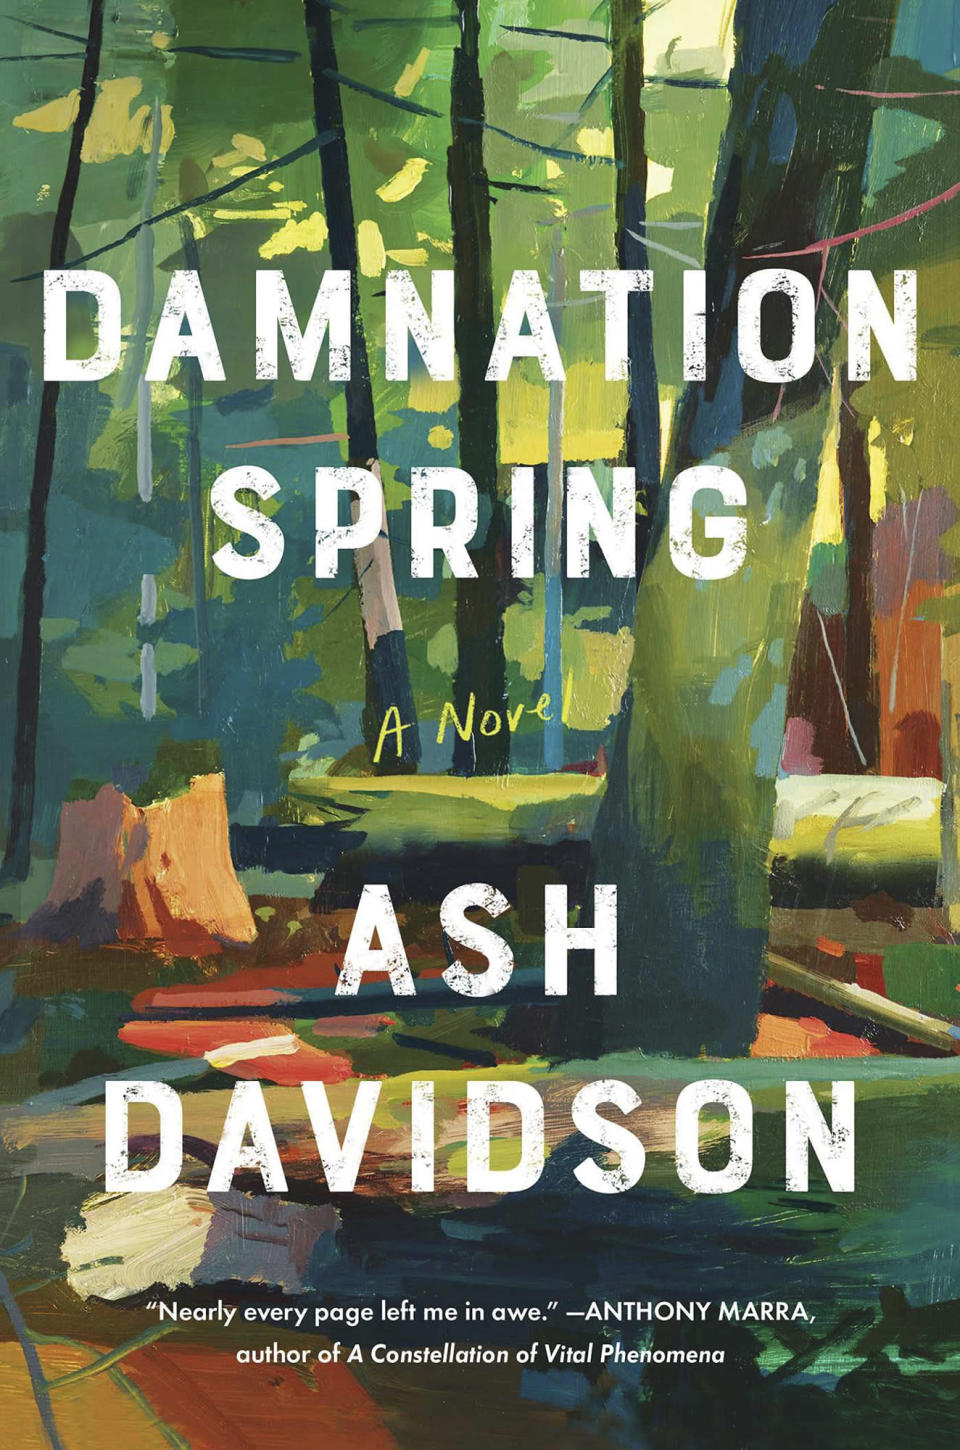 <p>Along California's northern coast, Rich Gunderson's family has made a living in logging for generations. But now, as the forest begins to run out and the women in town begin to notice disturbing fertility patterns that might be tied to an herbicide, the community stands at a precipice. (Aug. 3)</p>